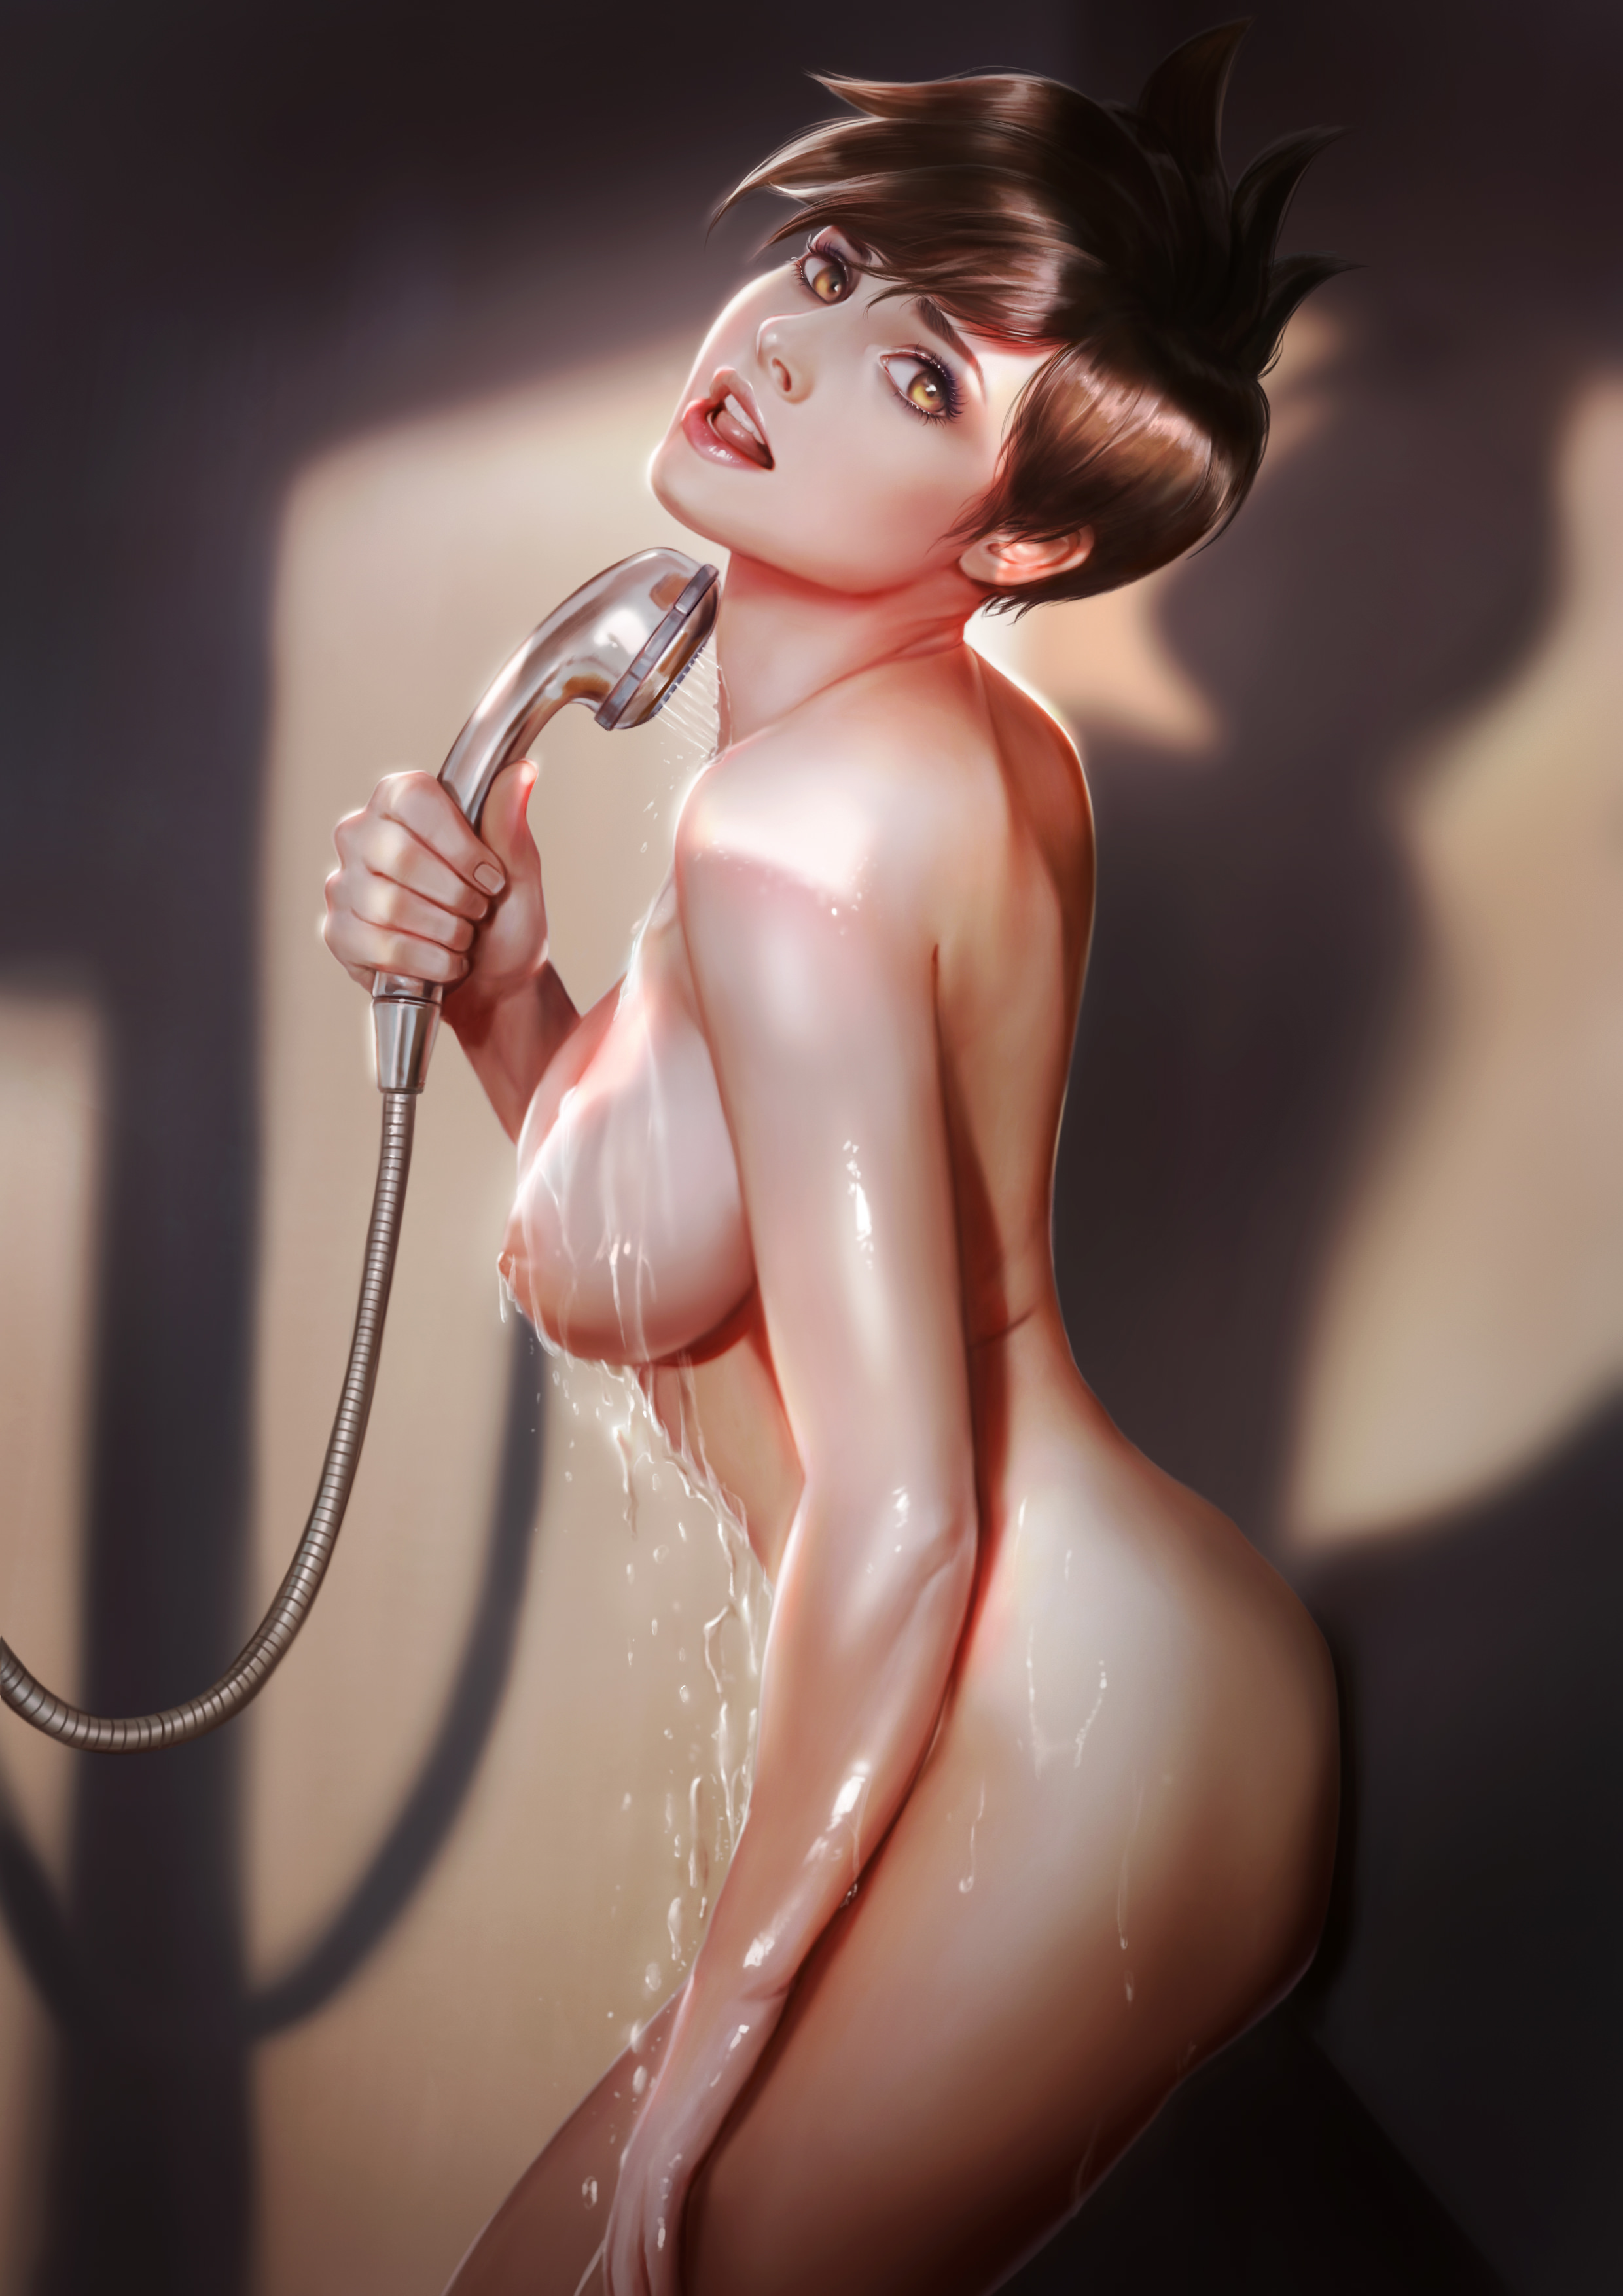 Mercy getting fucked in the shower Mercy Overwatch Shower Hot Porn Site Image